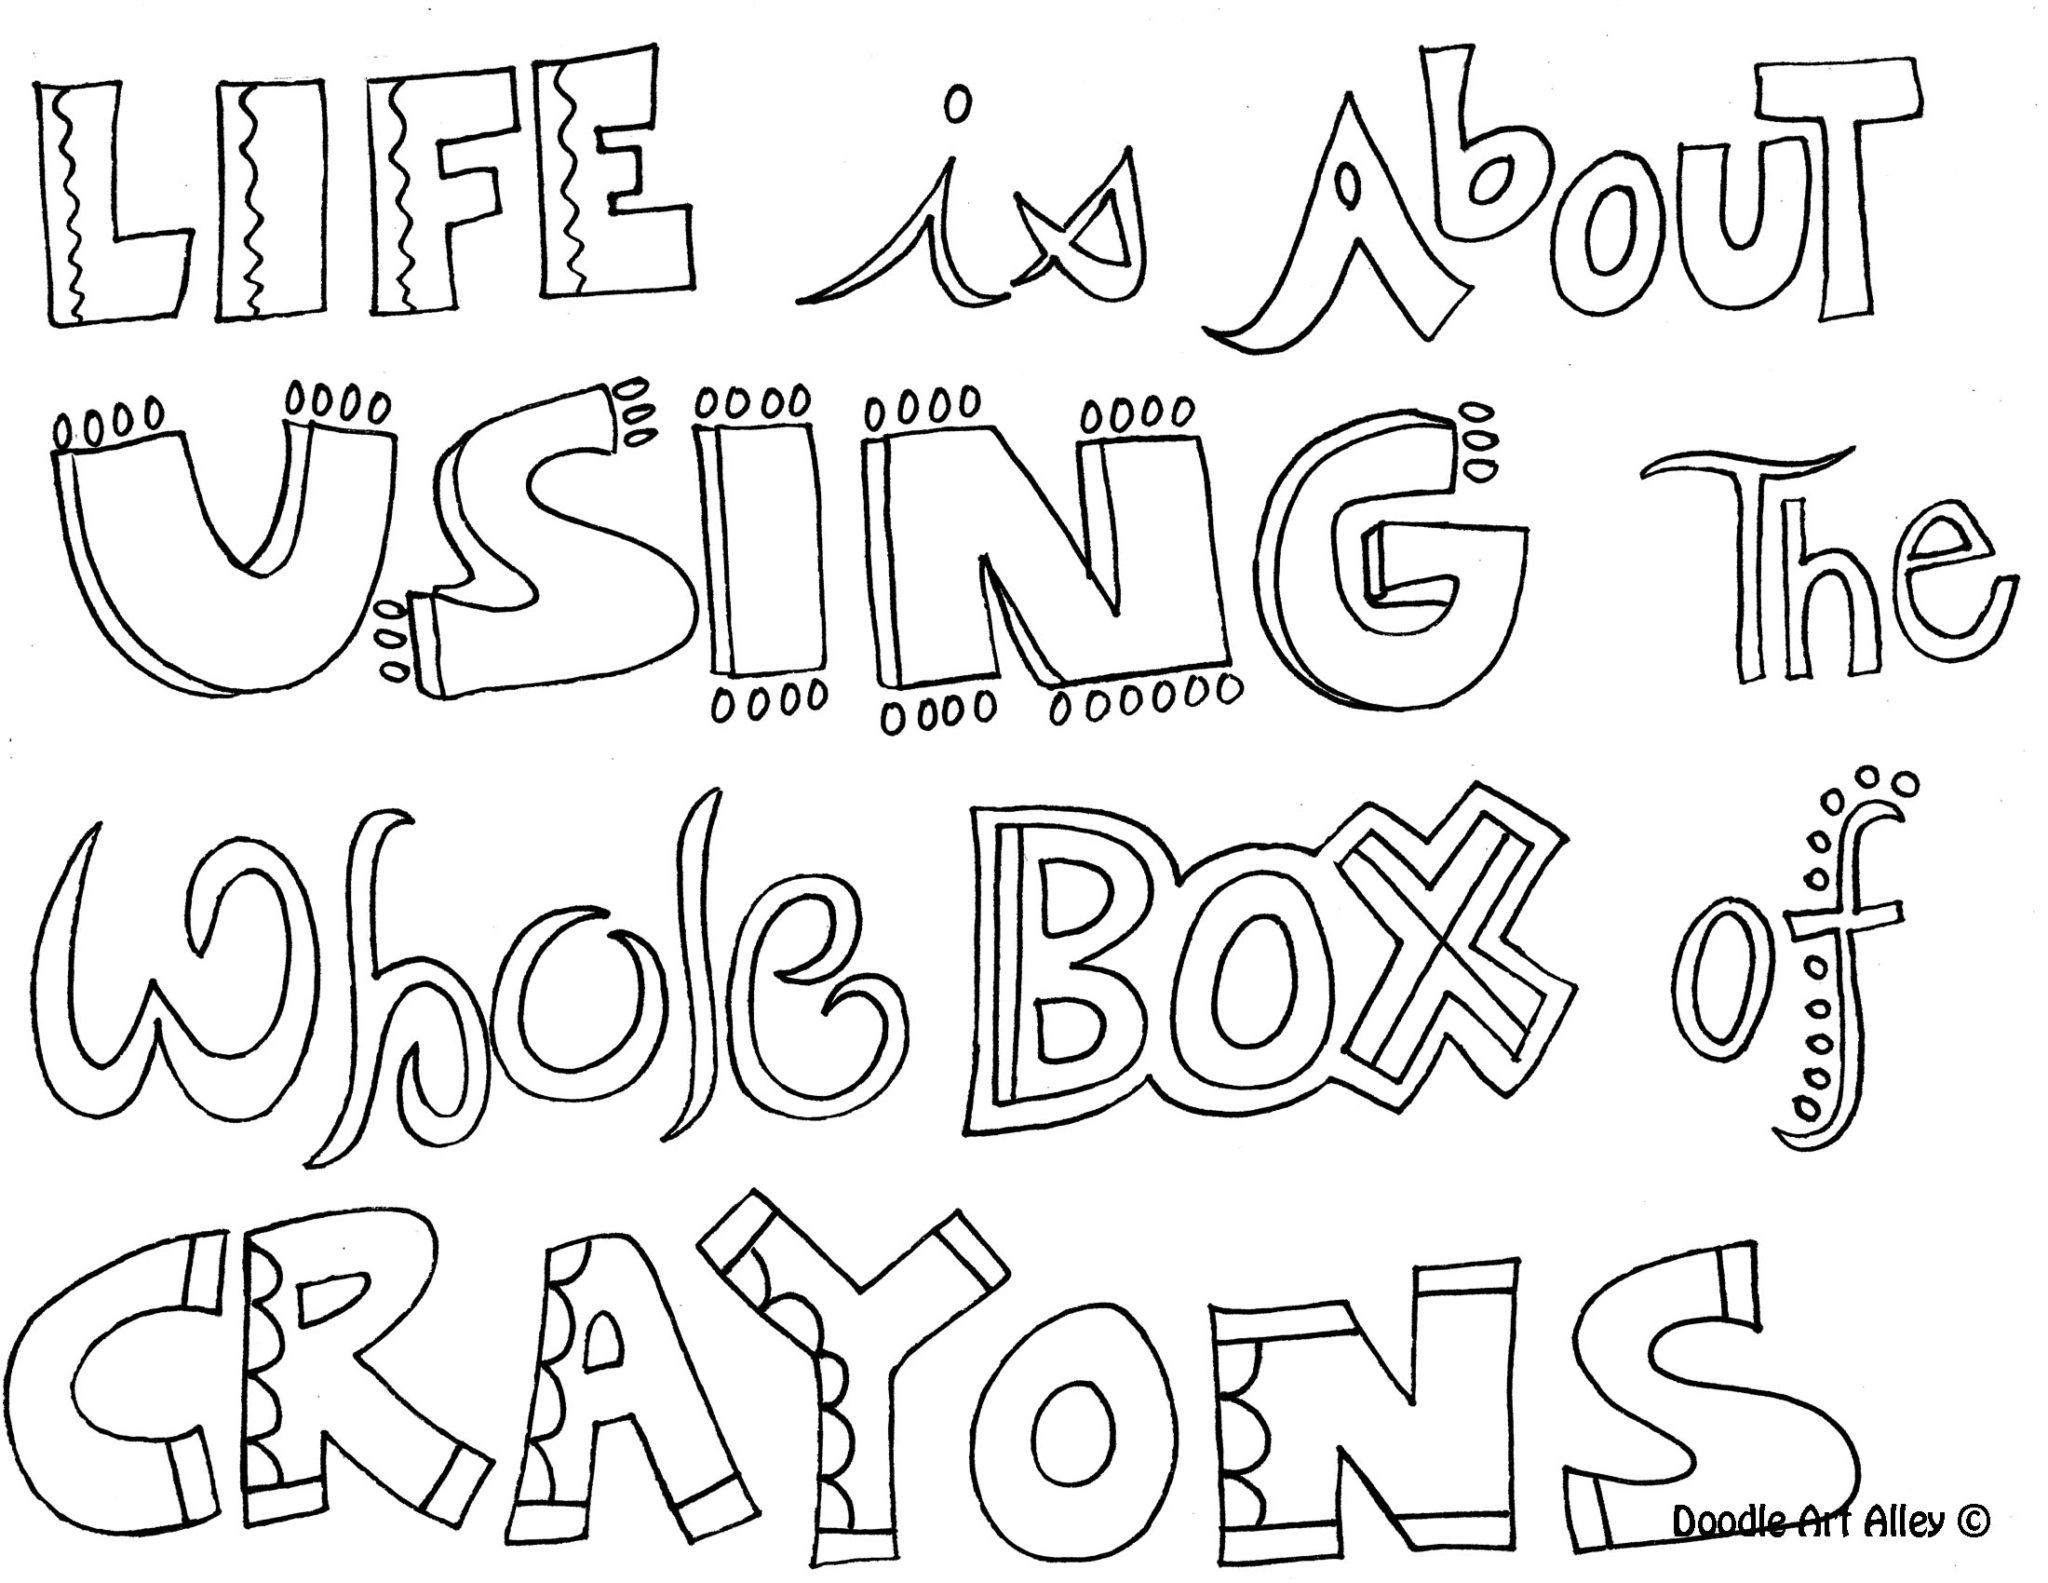 Dr Seuss Quote Coloring Pages Quotes Coloring Pages With Quotes